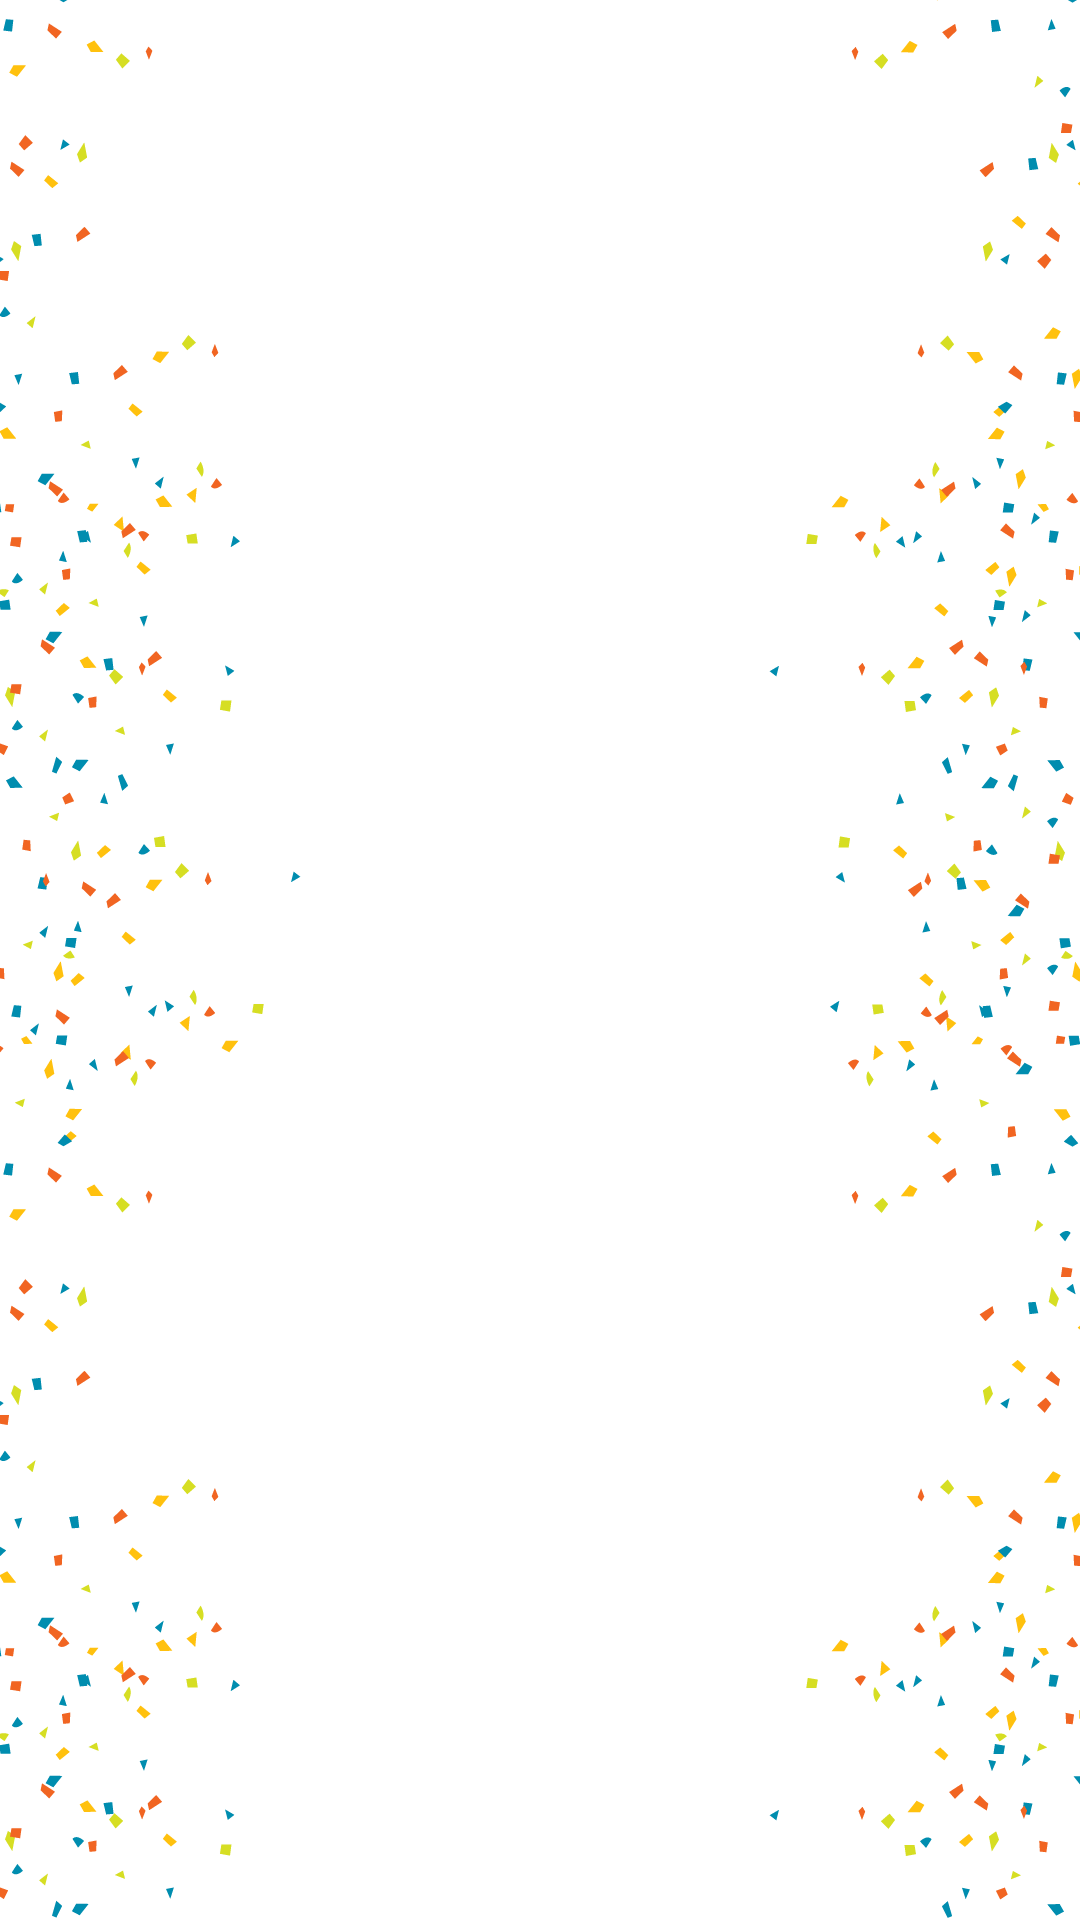 Simple Confetti Birthday Snapchat Filter Geofilter Maker